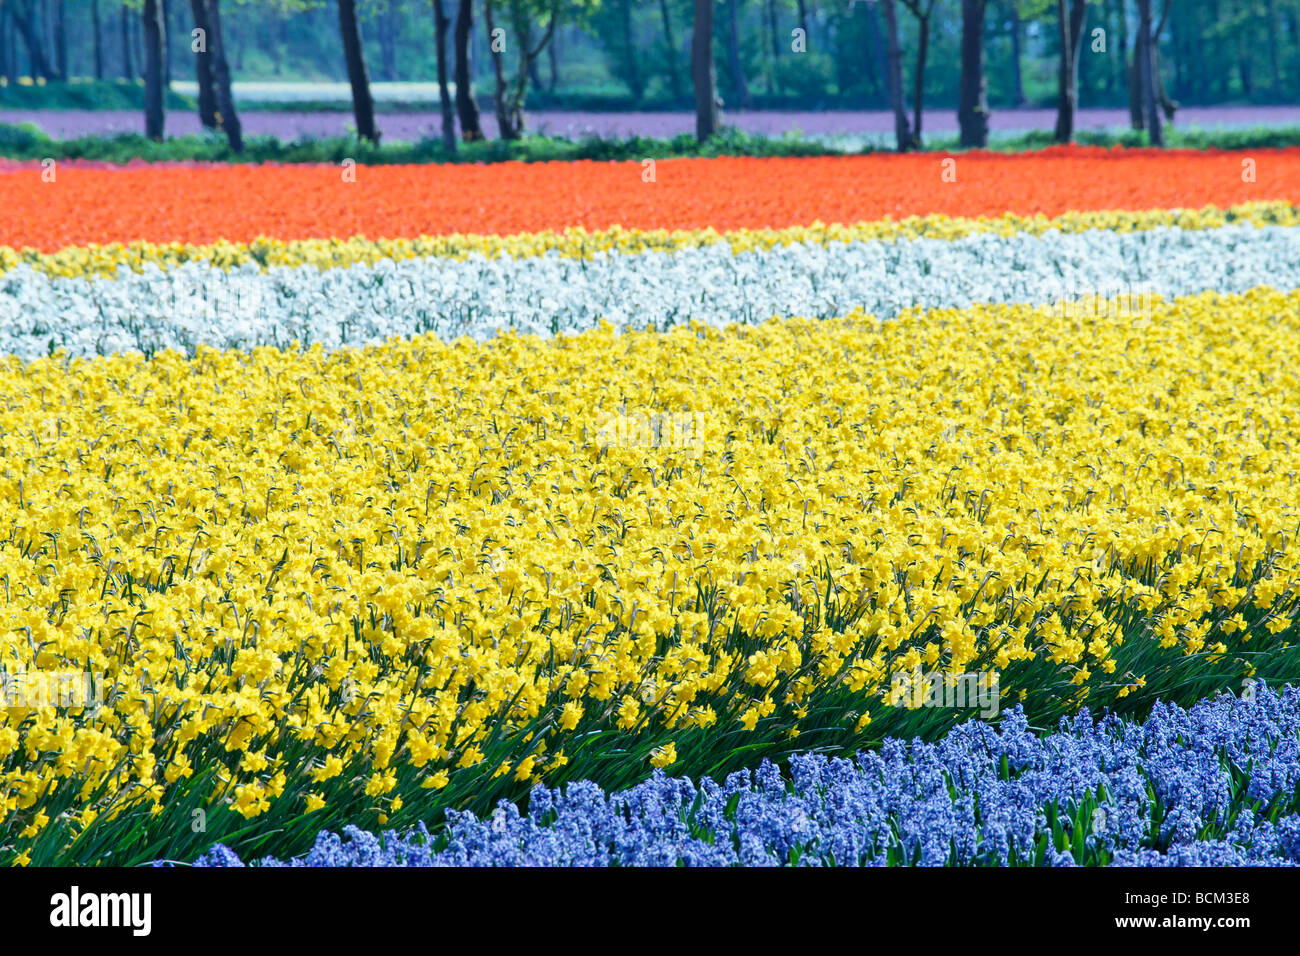 Tulips, daffodils and hyacinths in the fields of the Bollenstreek, South Holland, The Netherlands. - Stock Image